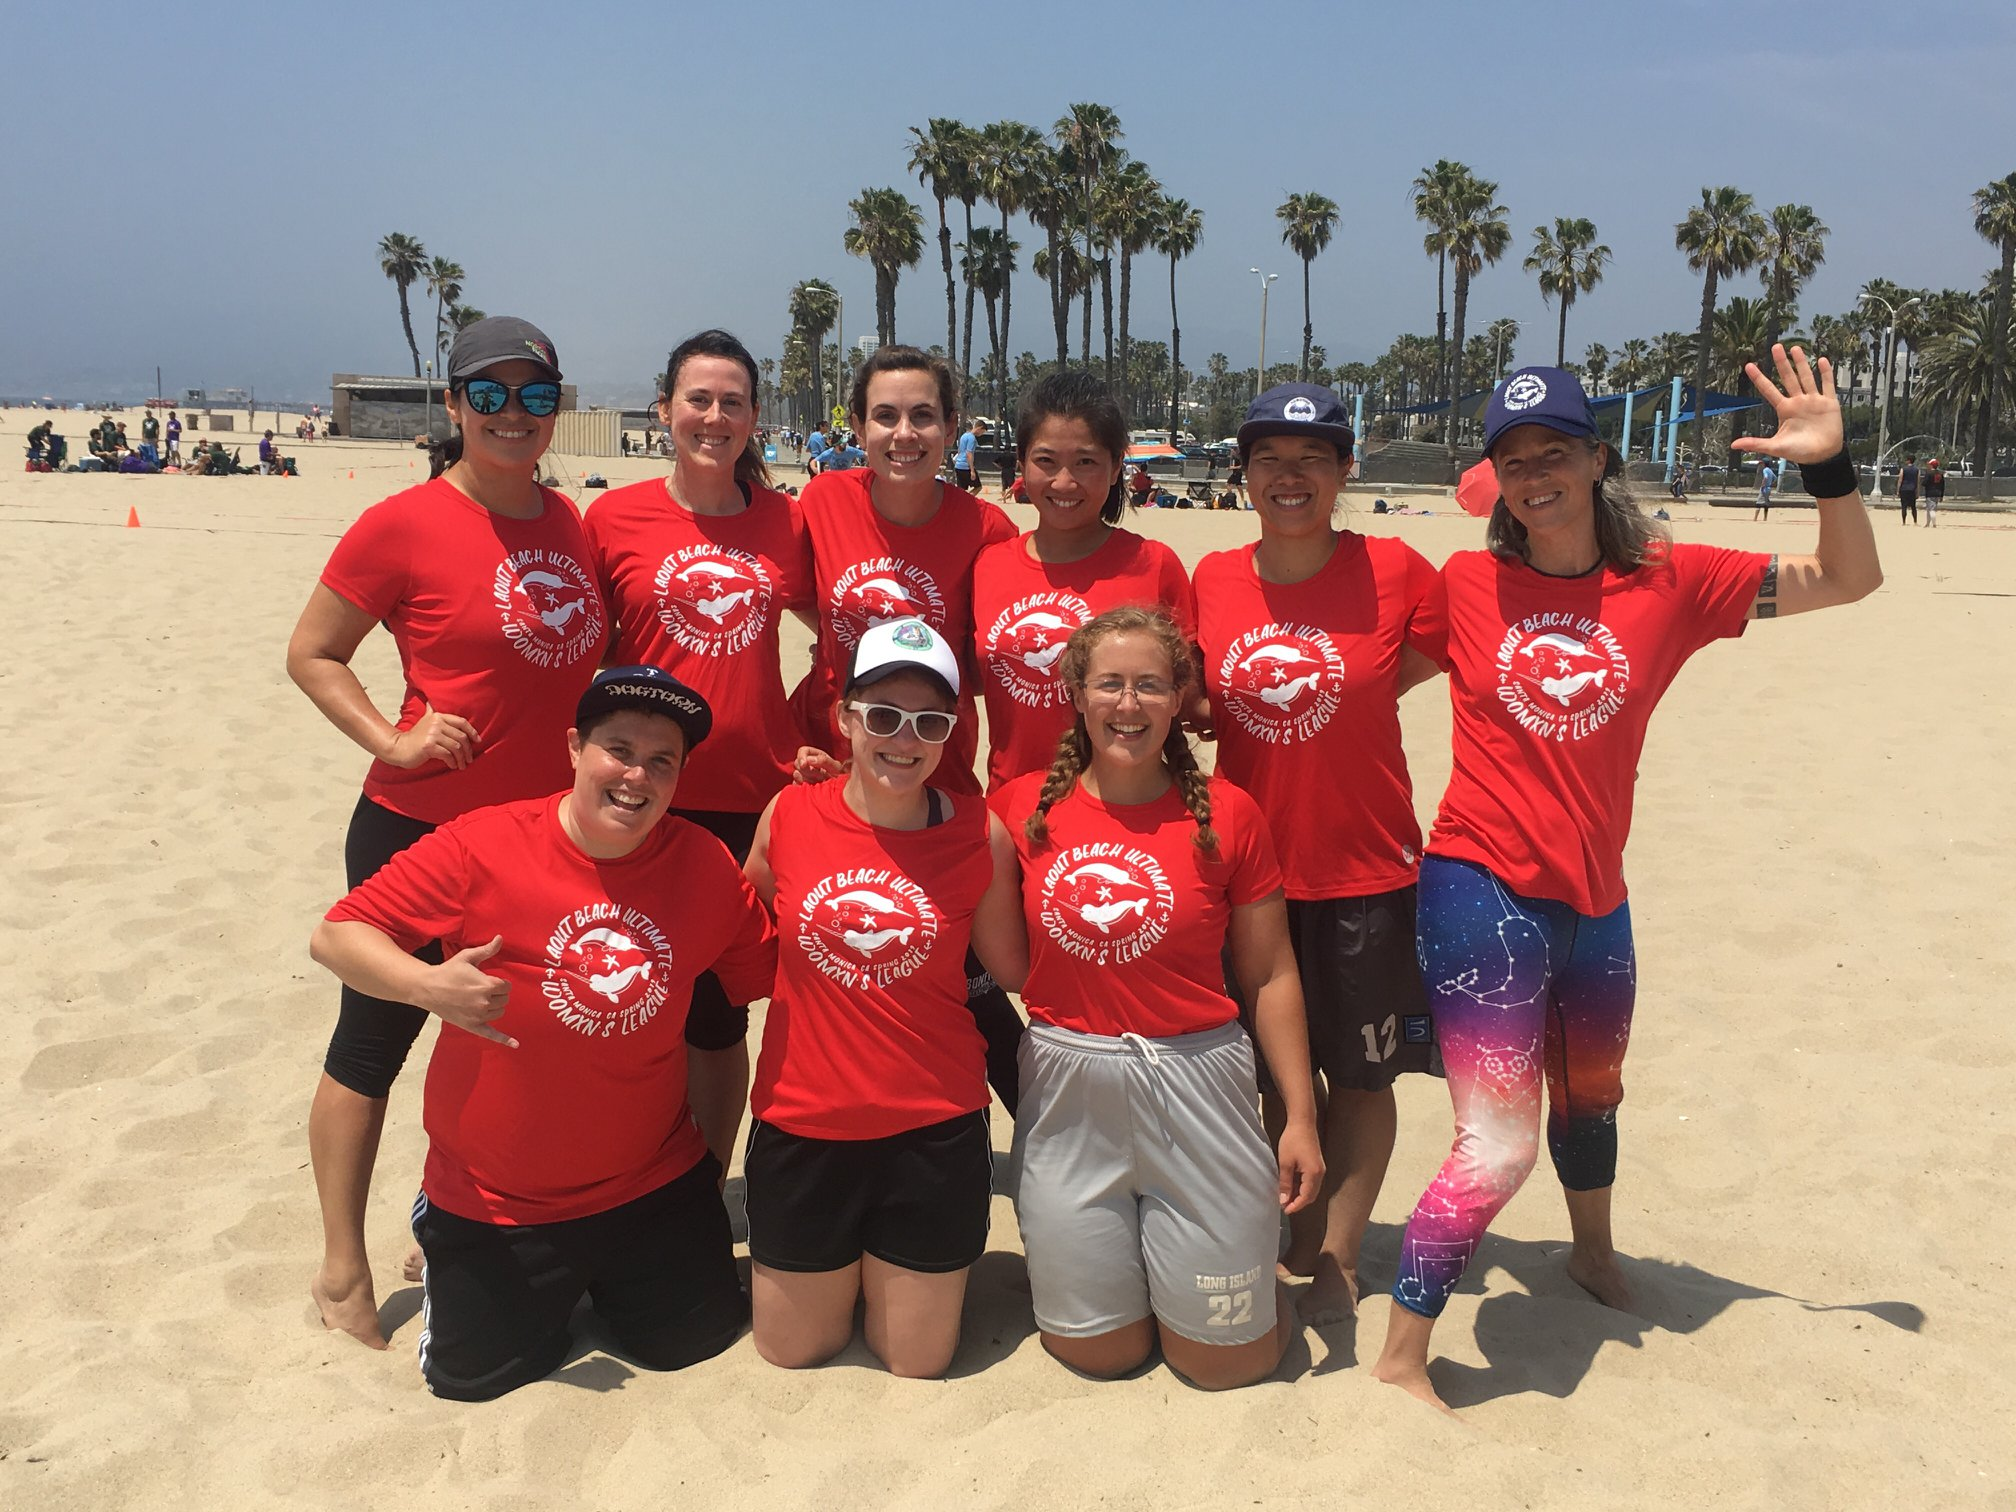 Dana, with her Ultimate Frisbee team, May 2019. They went on to win the league.